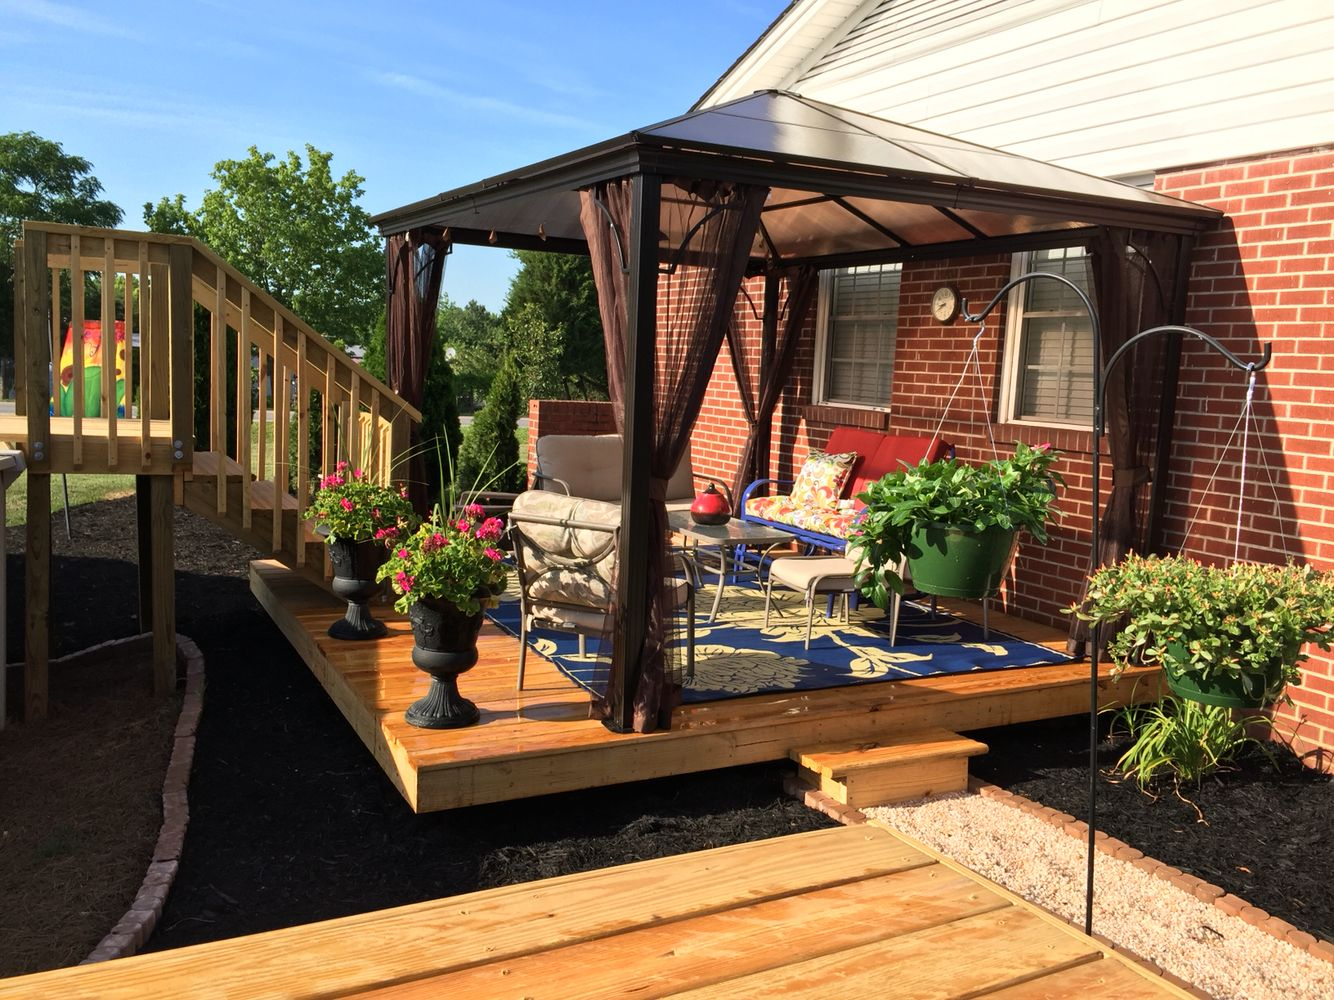 Floating Deck With Gazebo Patio Floating Deck Gazebo